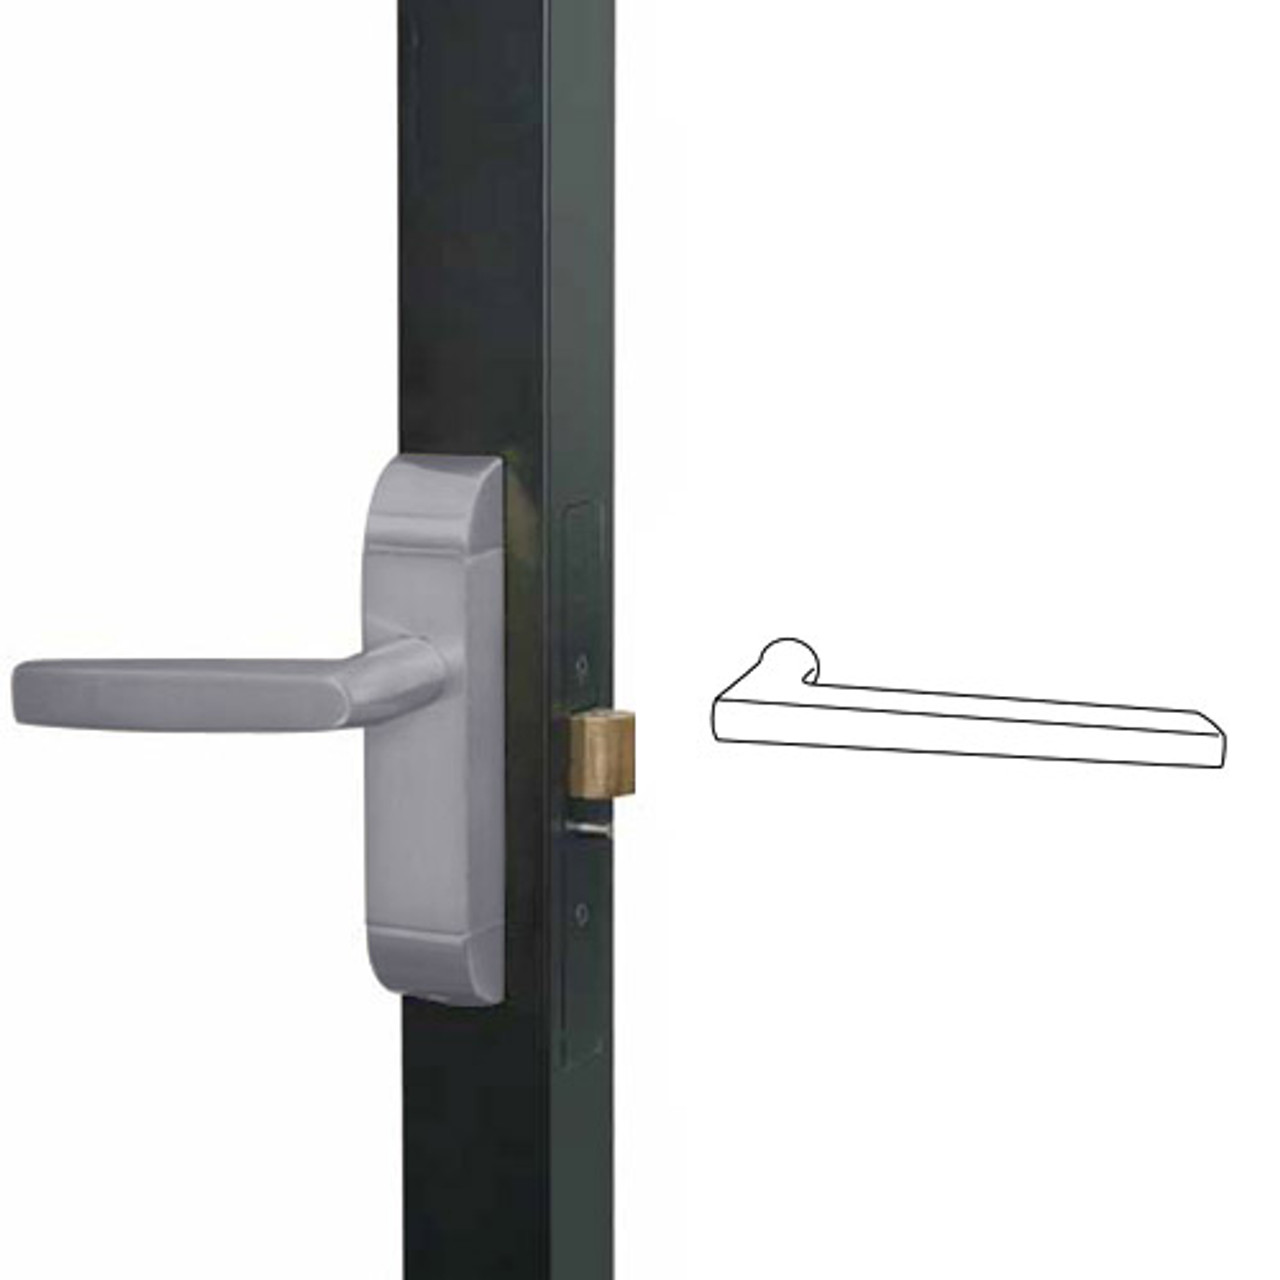 4600M-MD-551-US32D Adams Rite MD Designer Deadlatch handle in Satin Stainless Finish